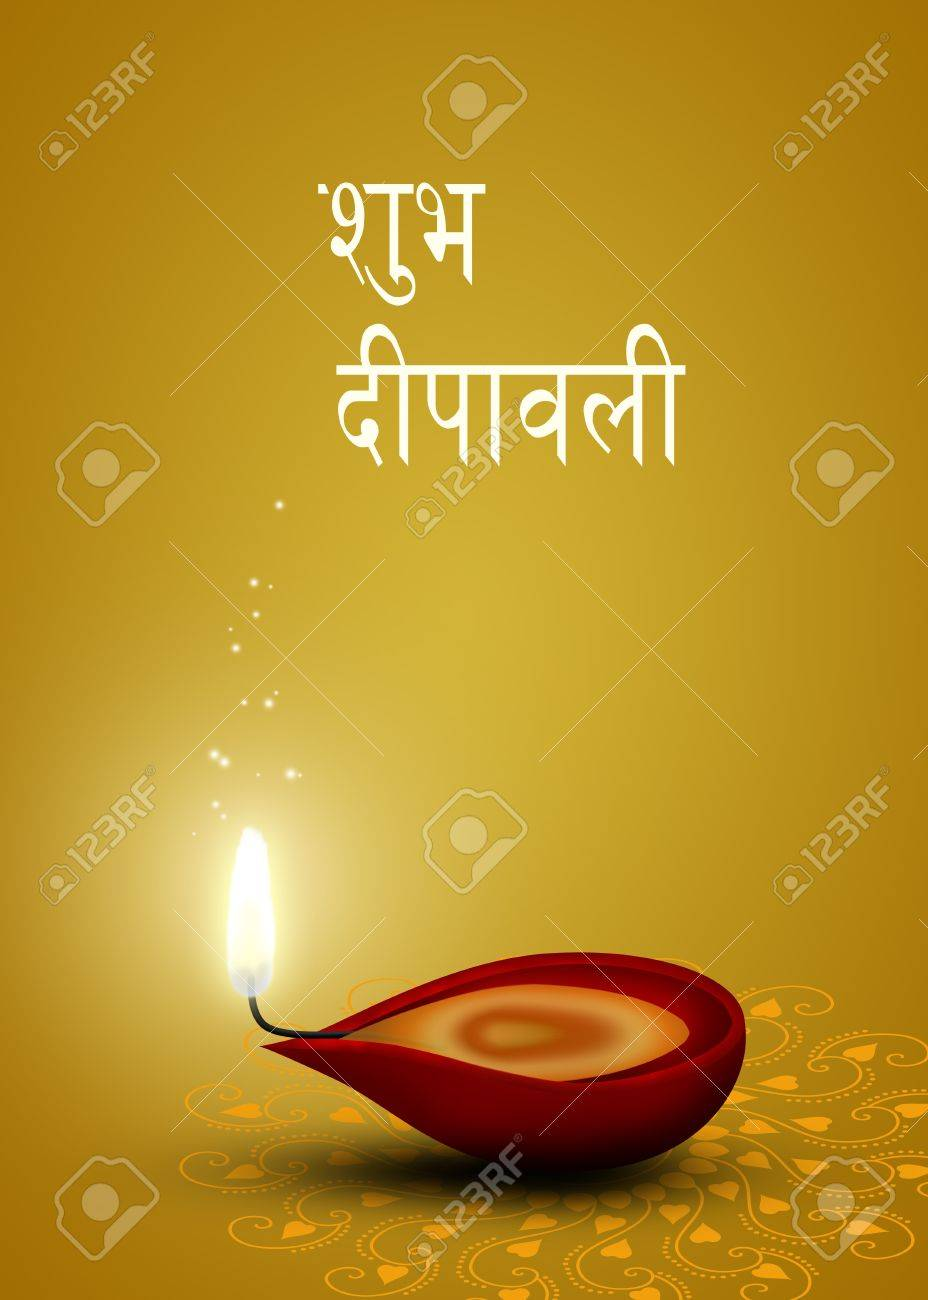 Shubh Diwali Illustration  red diya  a cup-shaped indian oil lamp  with an indian ornamental mandala and the greeting written in Sanskrit Stock Illustration - 15529295